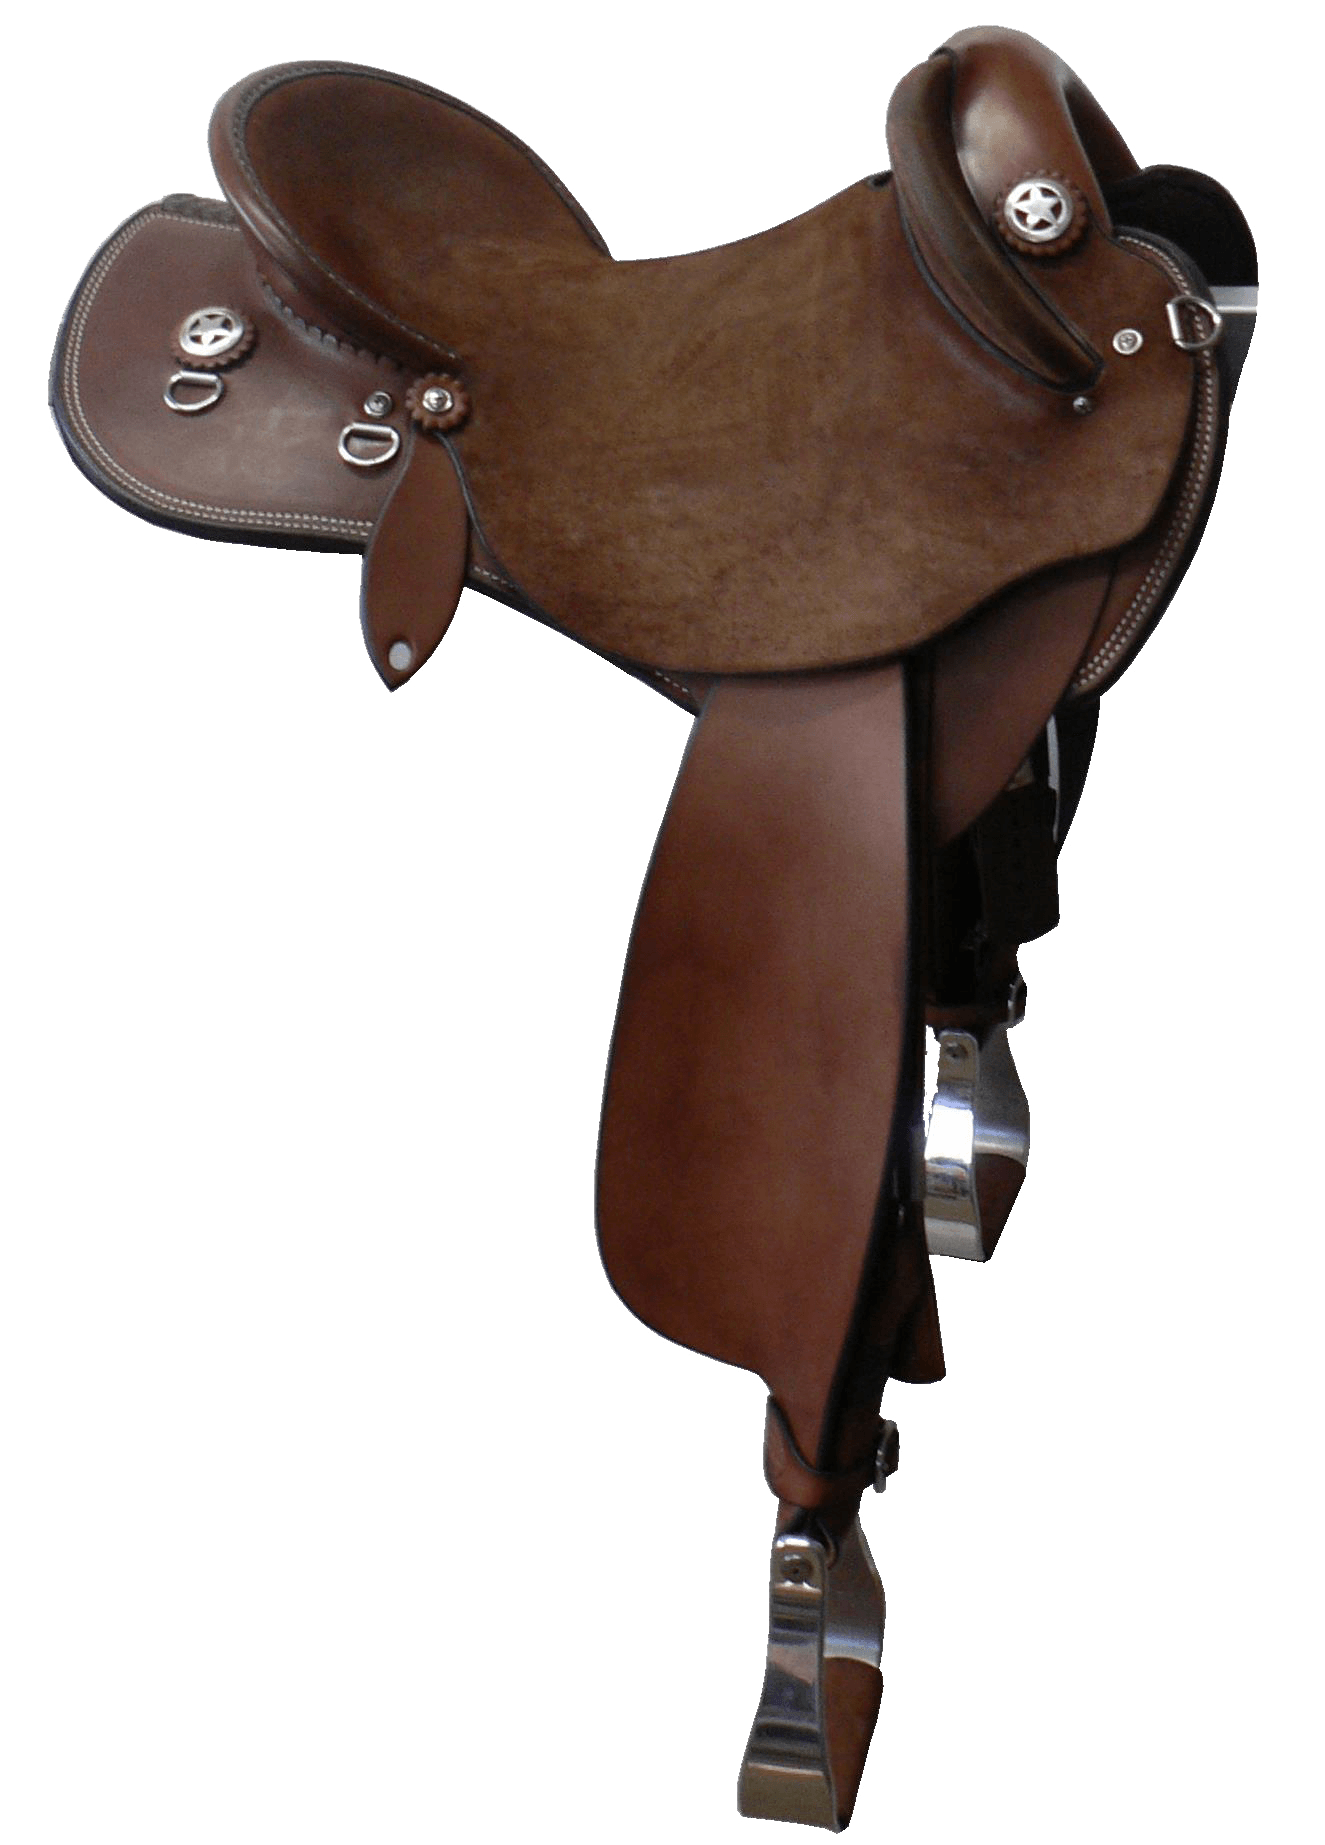 """The Campdrafter - This saddle made with:- Brown Leather- Standard Hard Seat- Stainless Steel FittingsAll saddles come fitted with Don Orrell 2"""" Flat Bottom Rancher Stirrups & Professional' Choice VenTECH Western Girth. Add ons:- Stainless Star Conchos $88Enquire Now."""